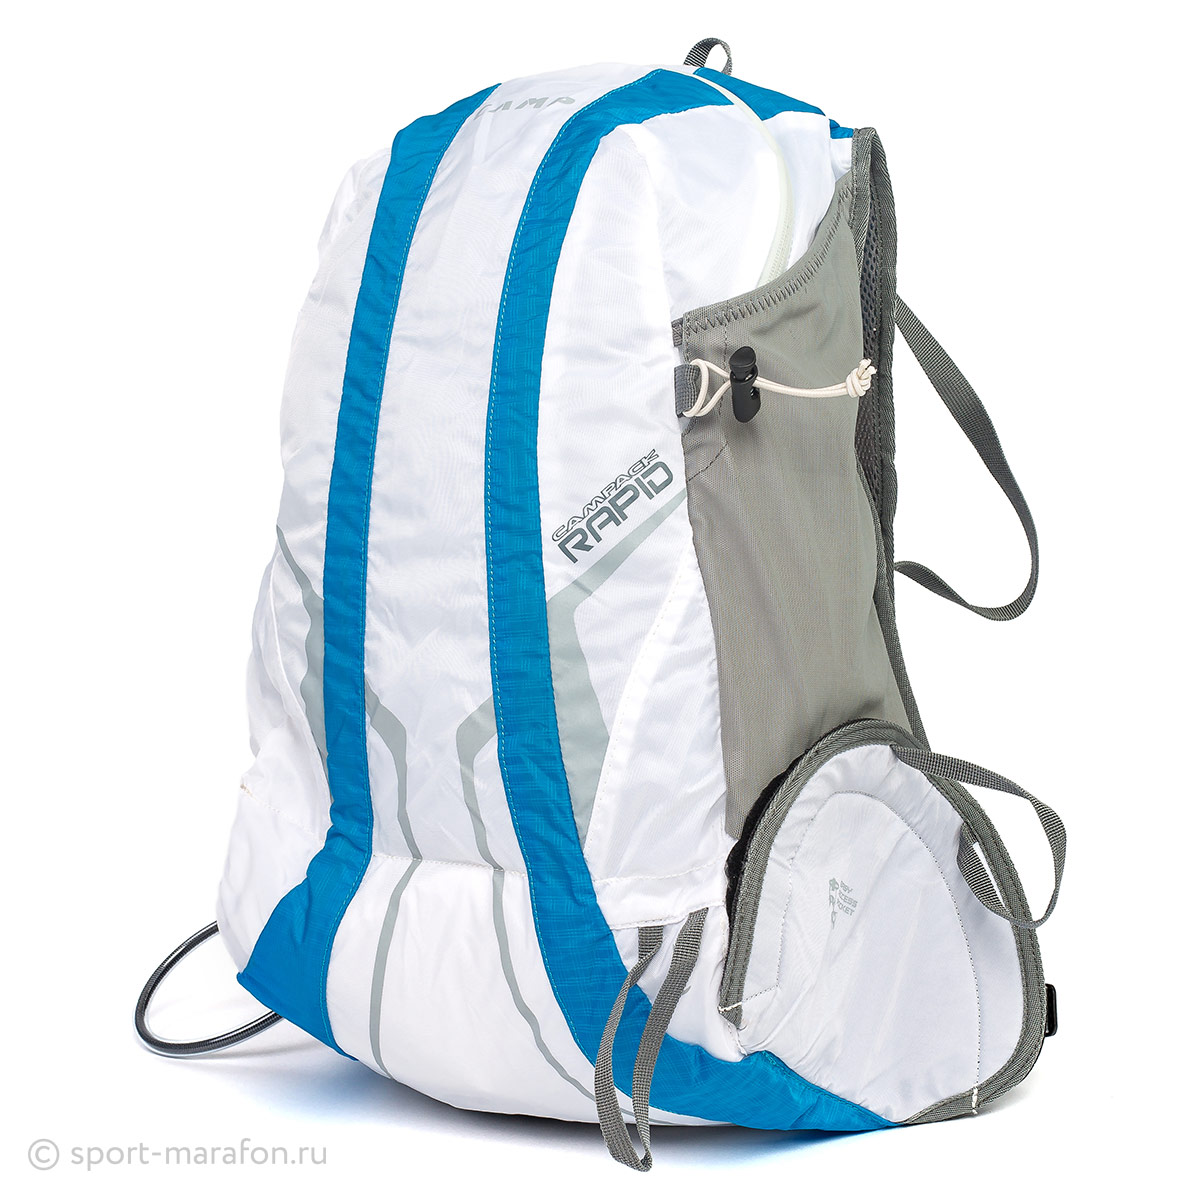 Рюкзак Camp Rapid 20 White/Light Blue - Фото 3 большая